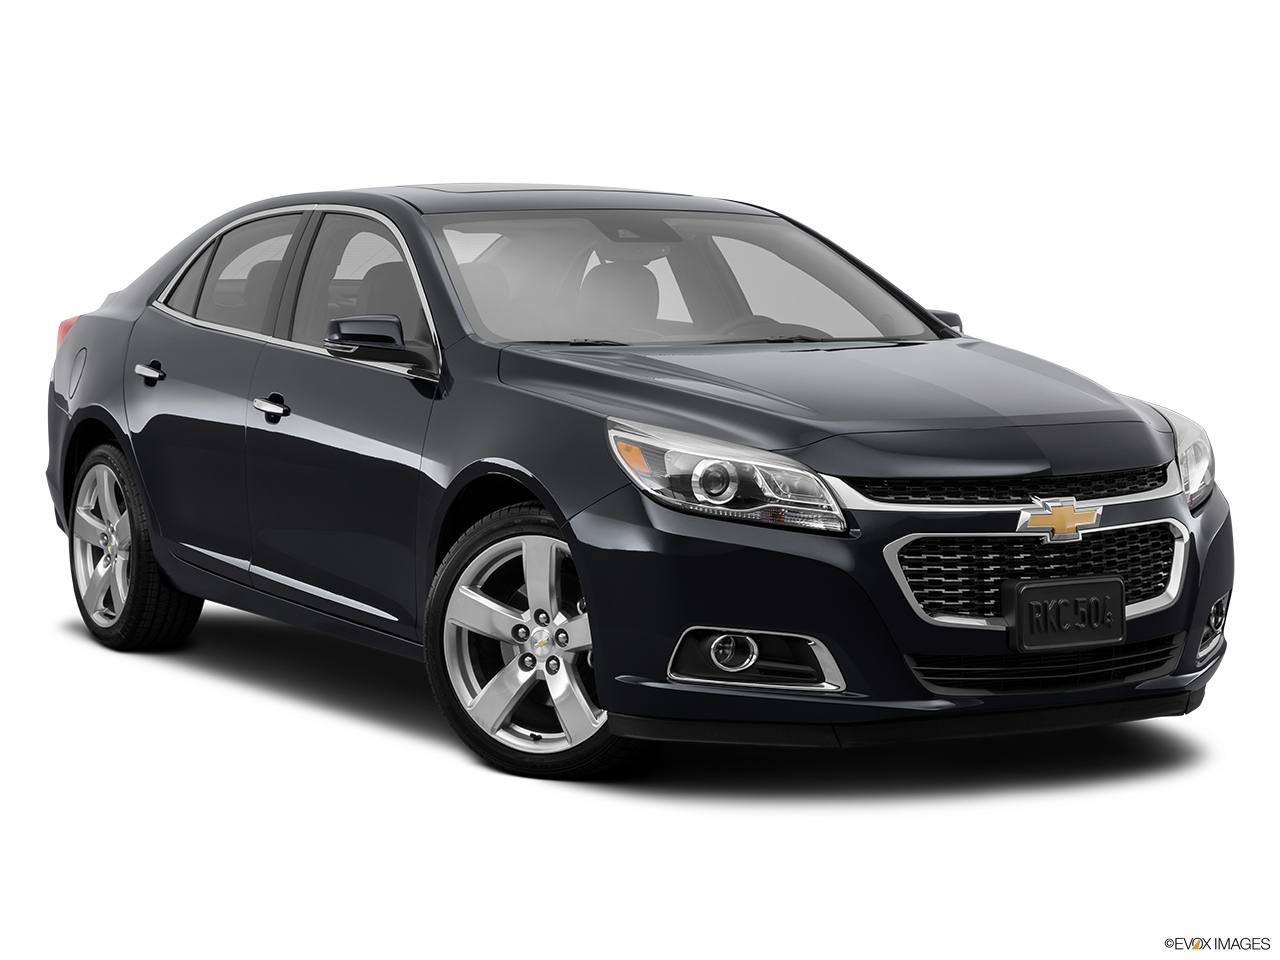 2014 chevrolet malibu sedan ltz w 2lz. Black Bedroom Furniture Sets. Home Design Ideas